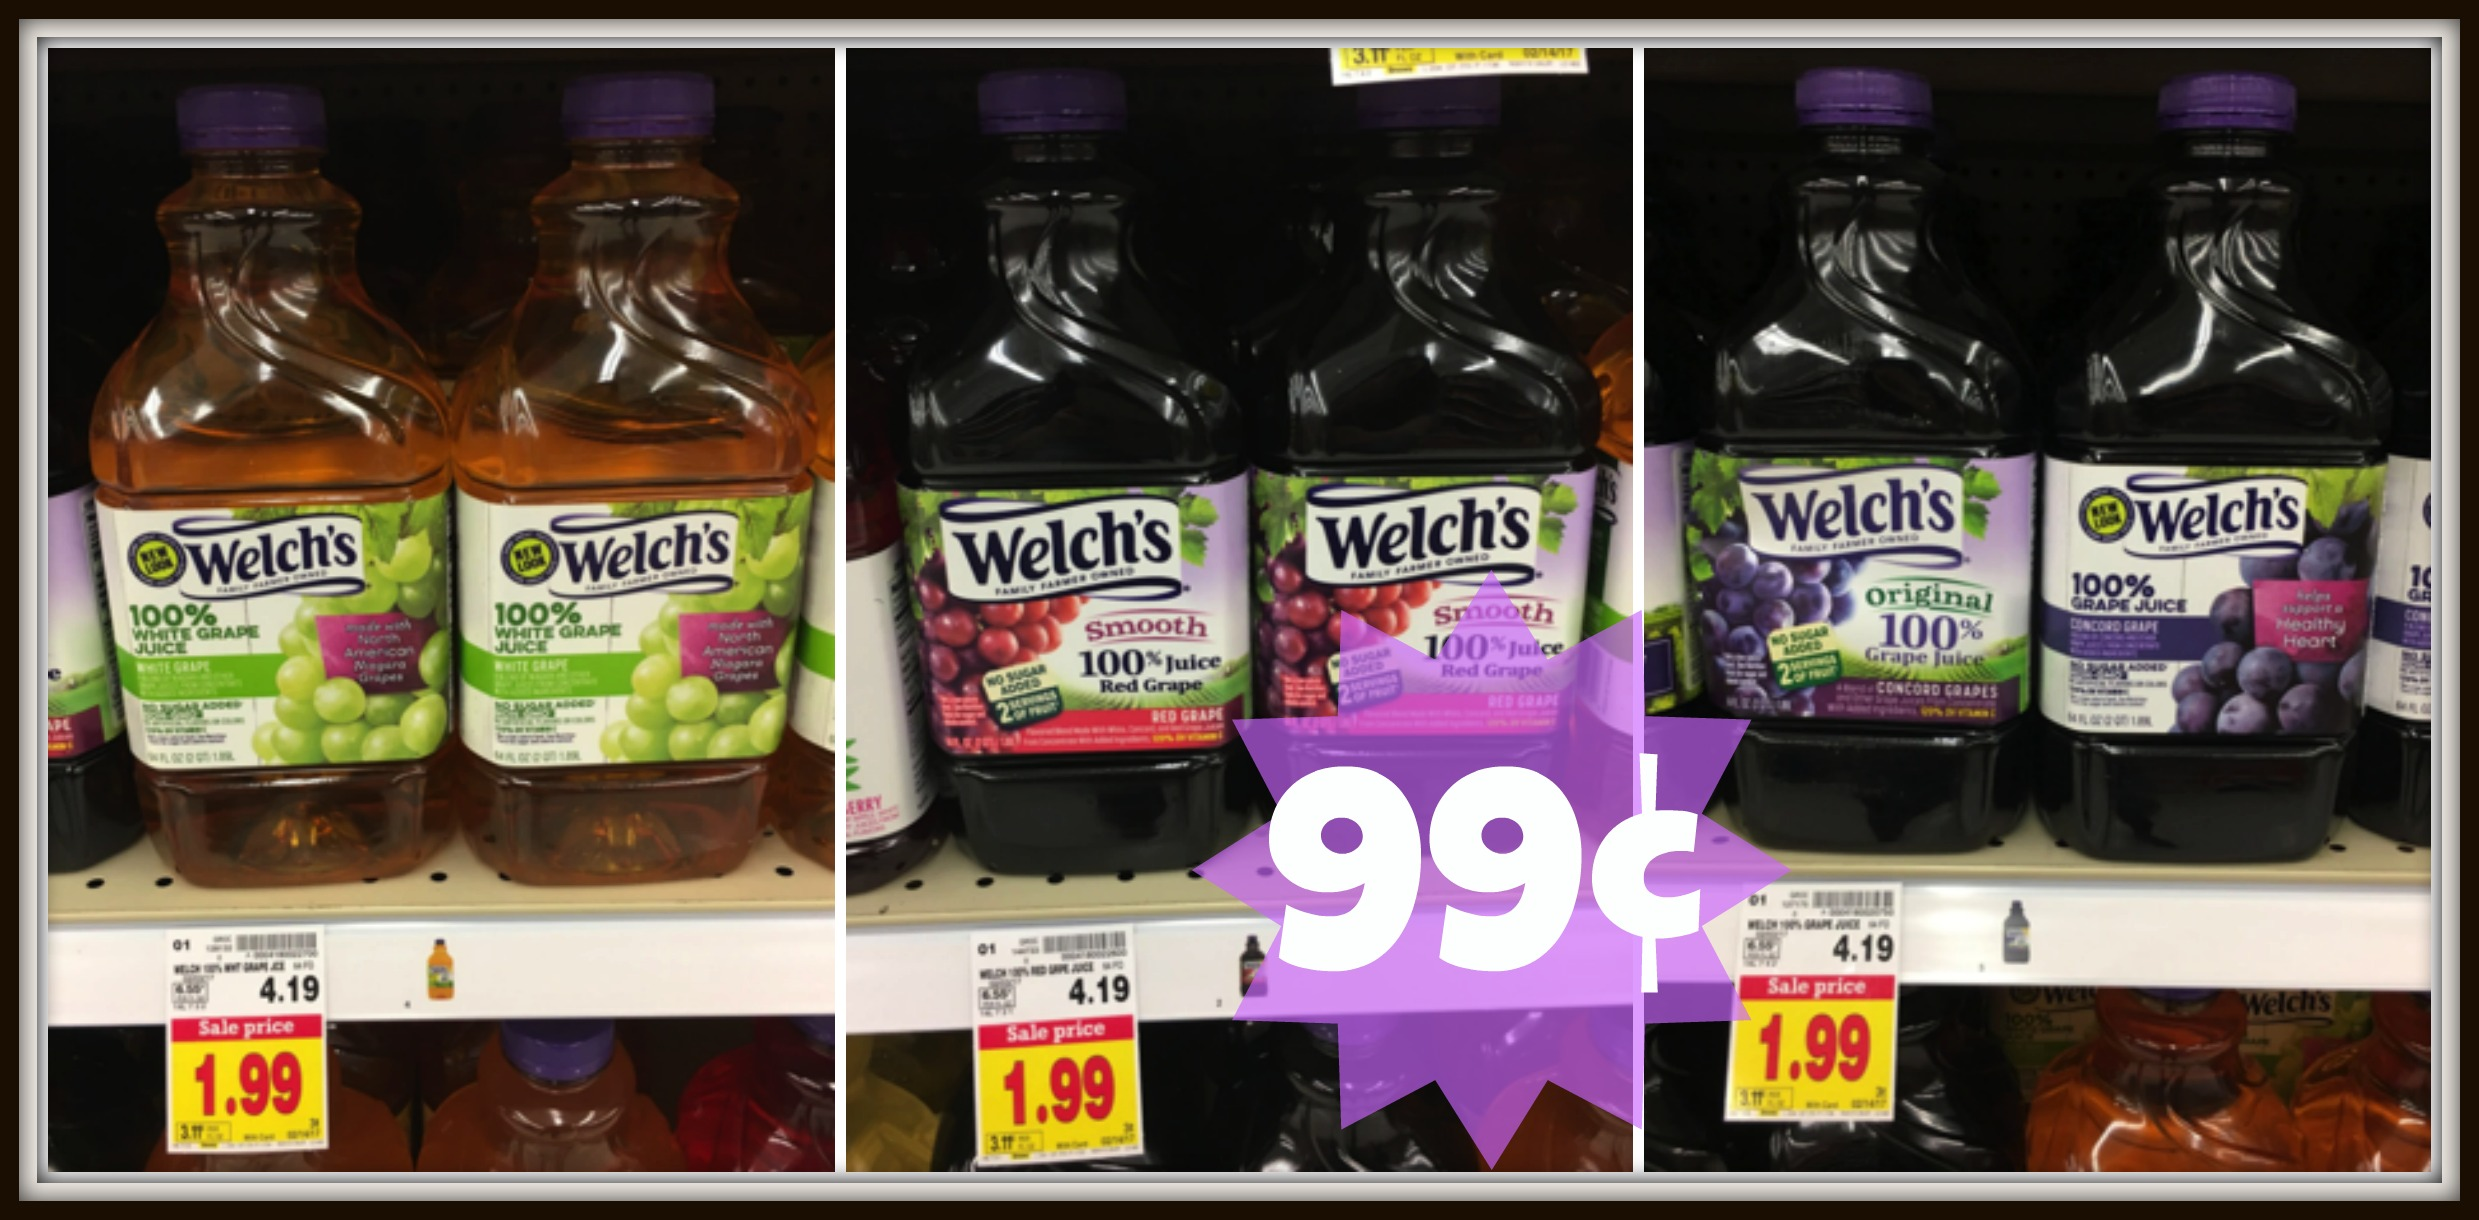 welch's juice Image